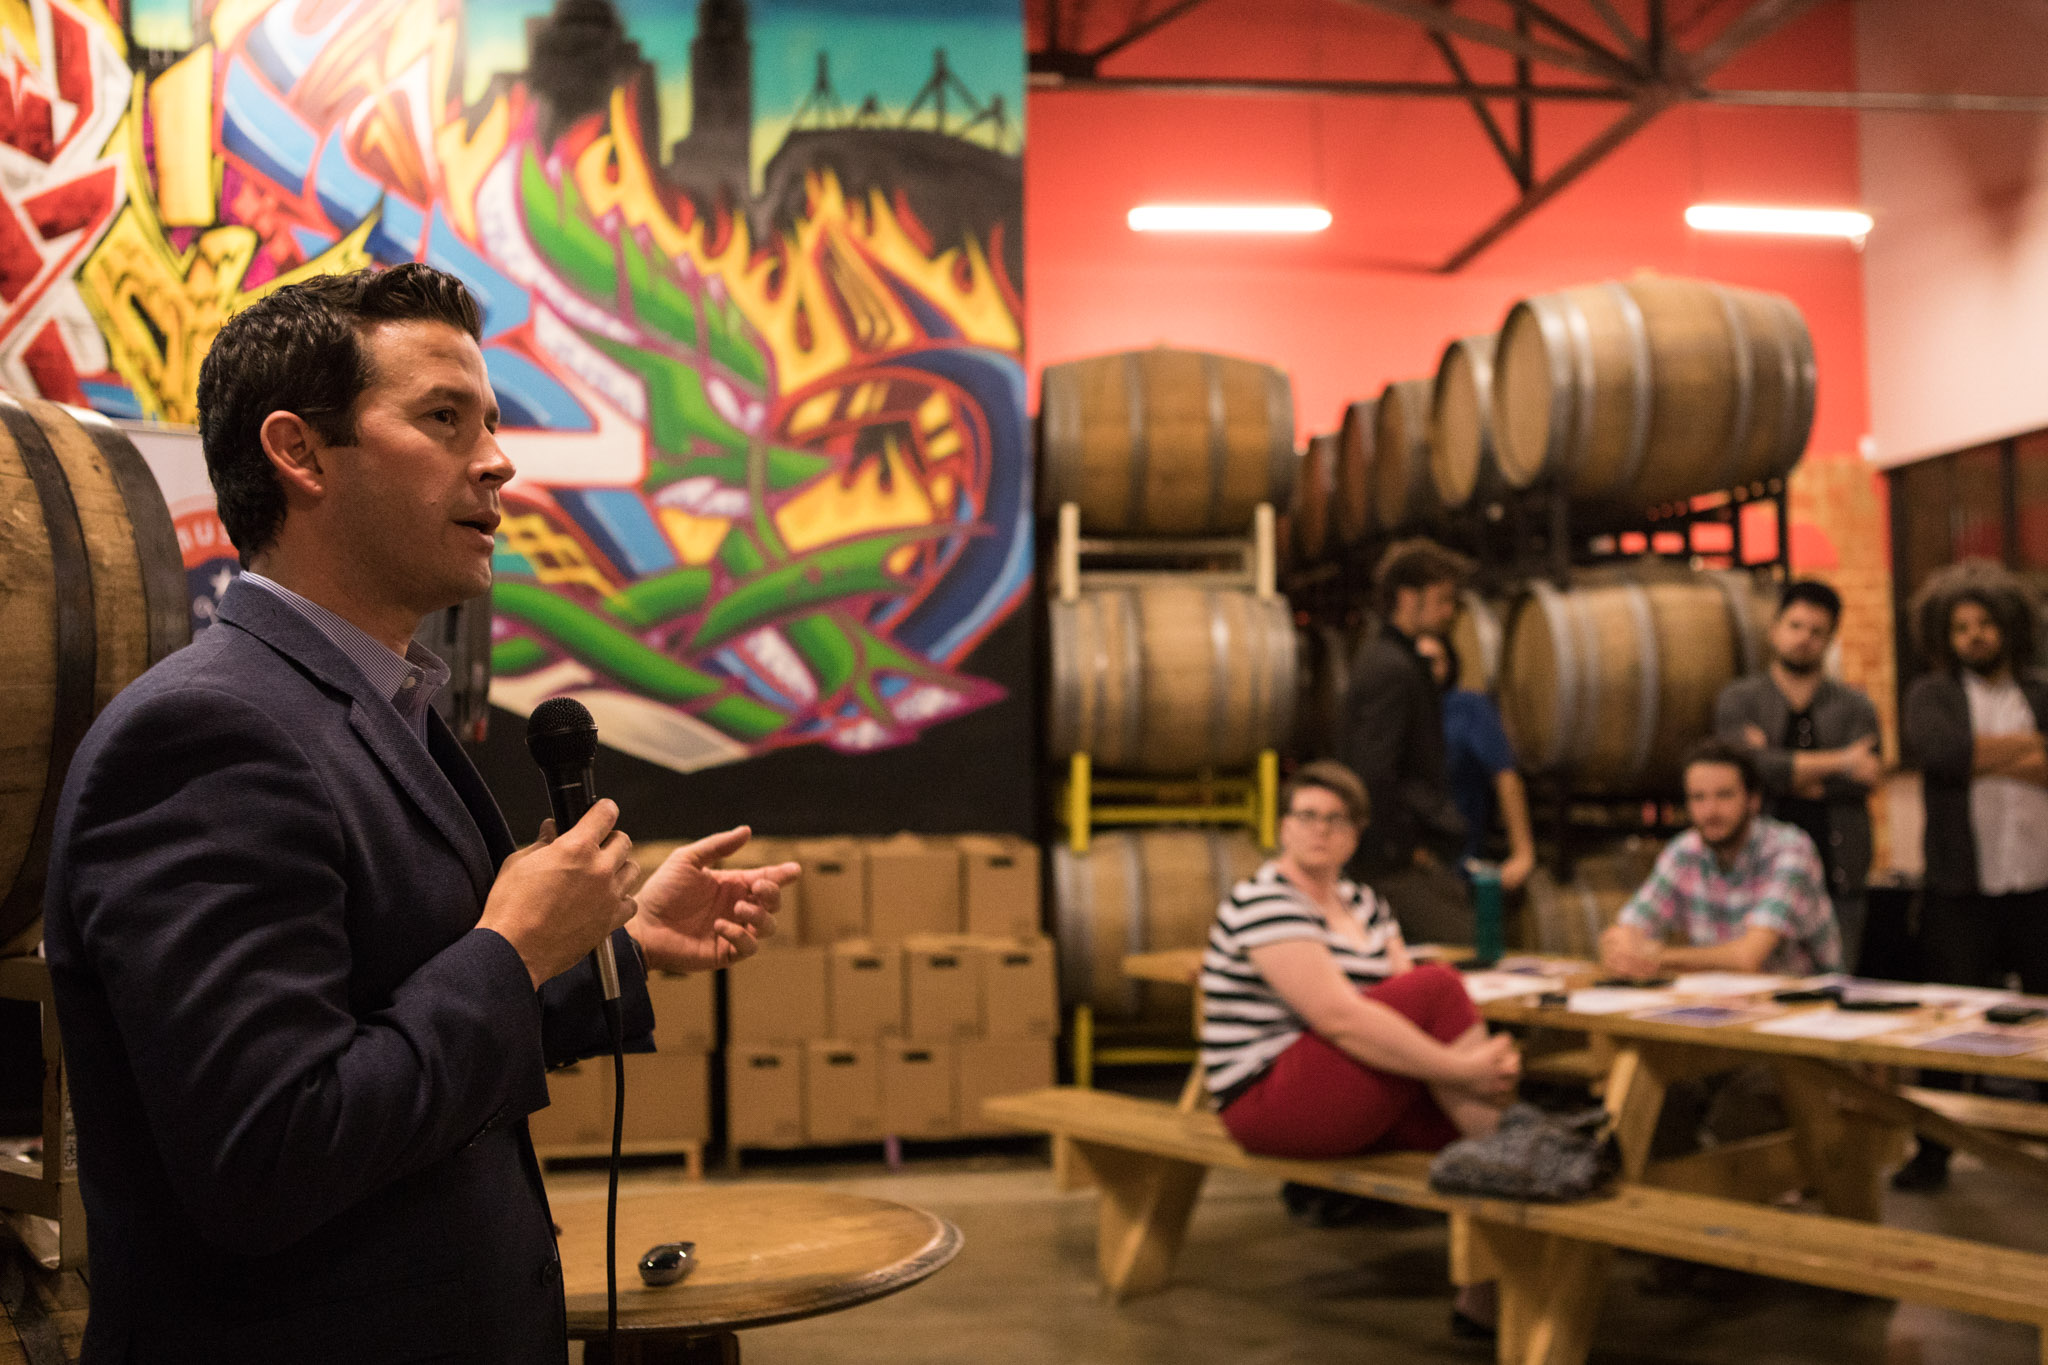 """Brendon Anthony, Texas Music Office Director, introduces the Texas Music Office's """"Music Friendly Communities"""" Workshop at Freetail Brewing Co."""